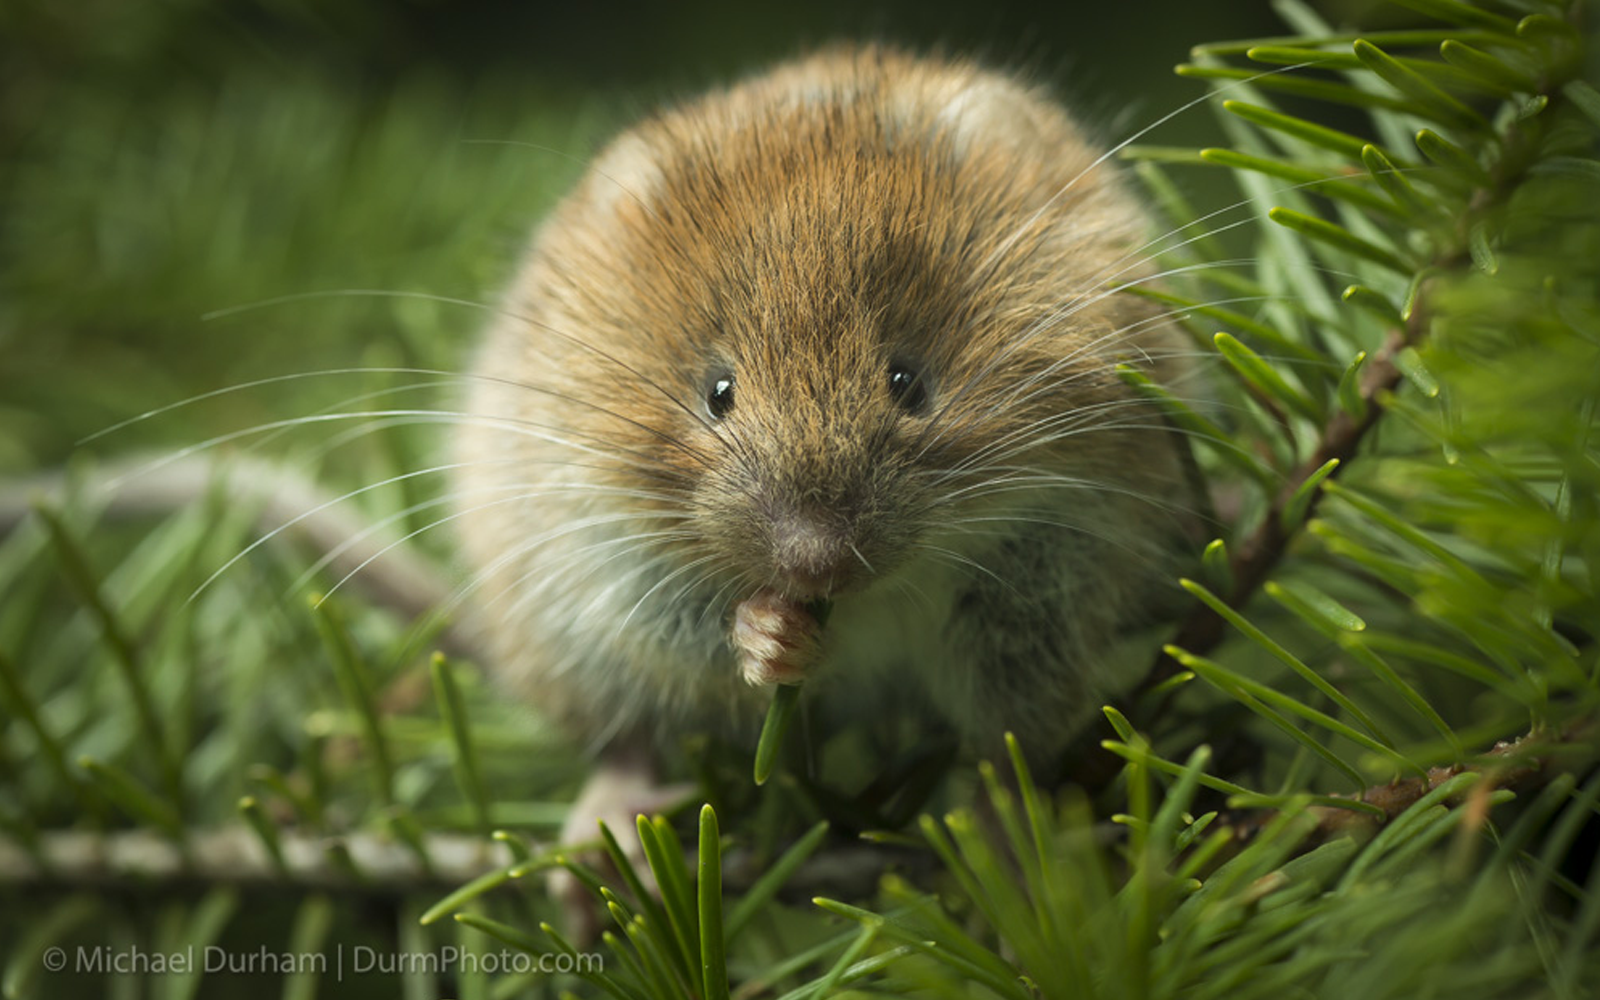 Lawsuit Filed to Protect Red Tree Vole